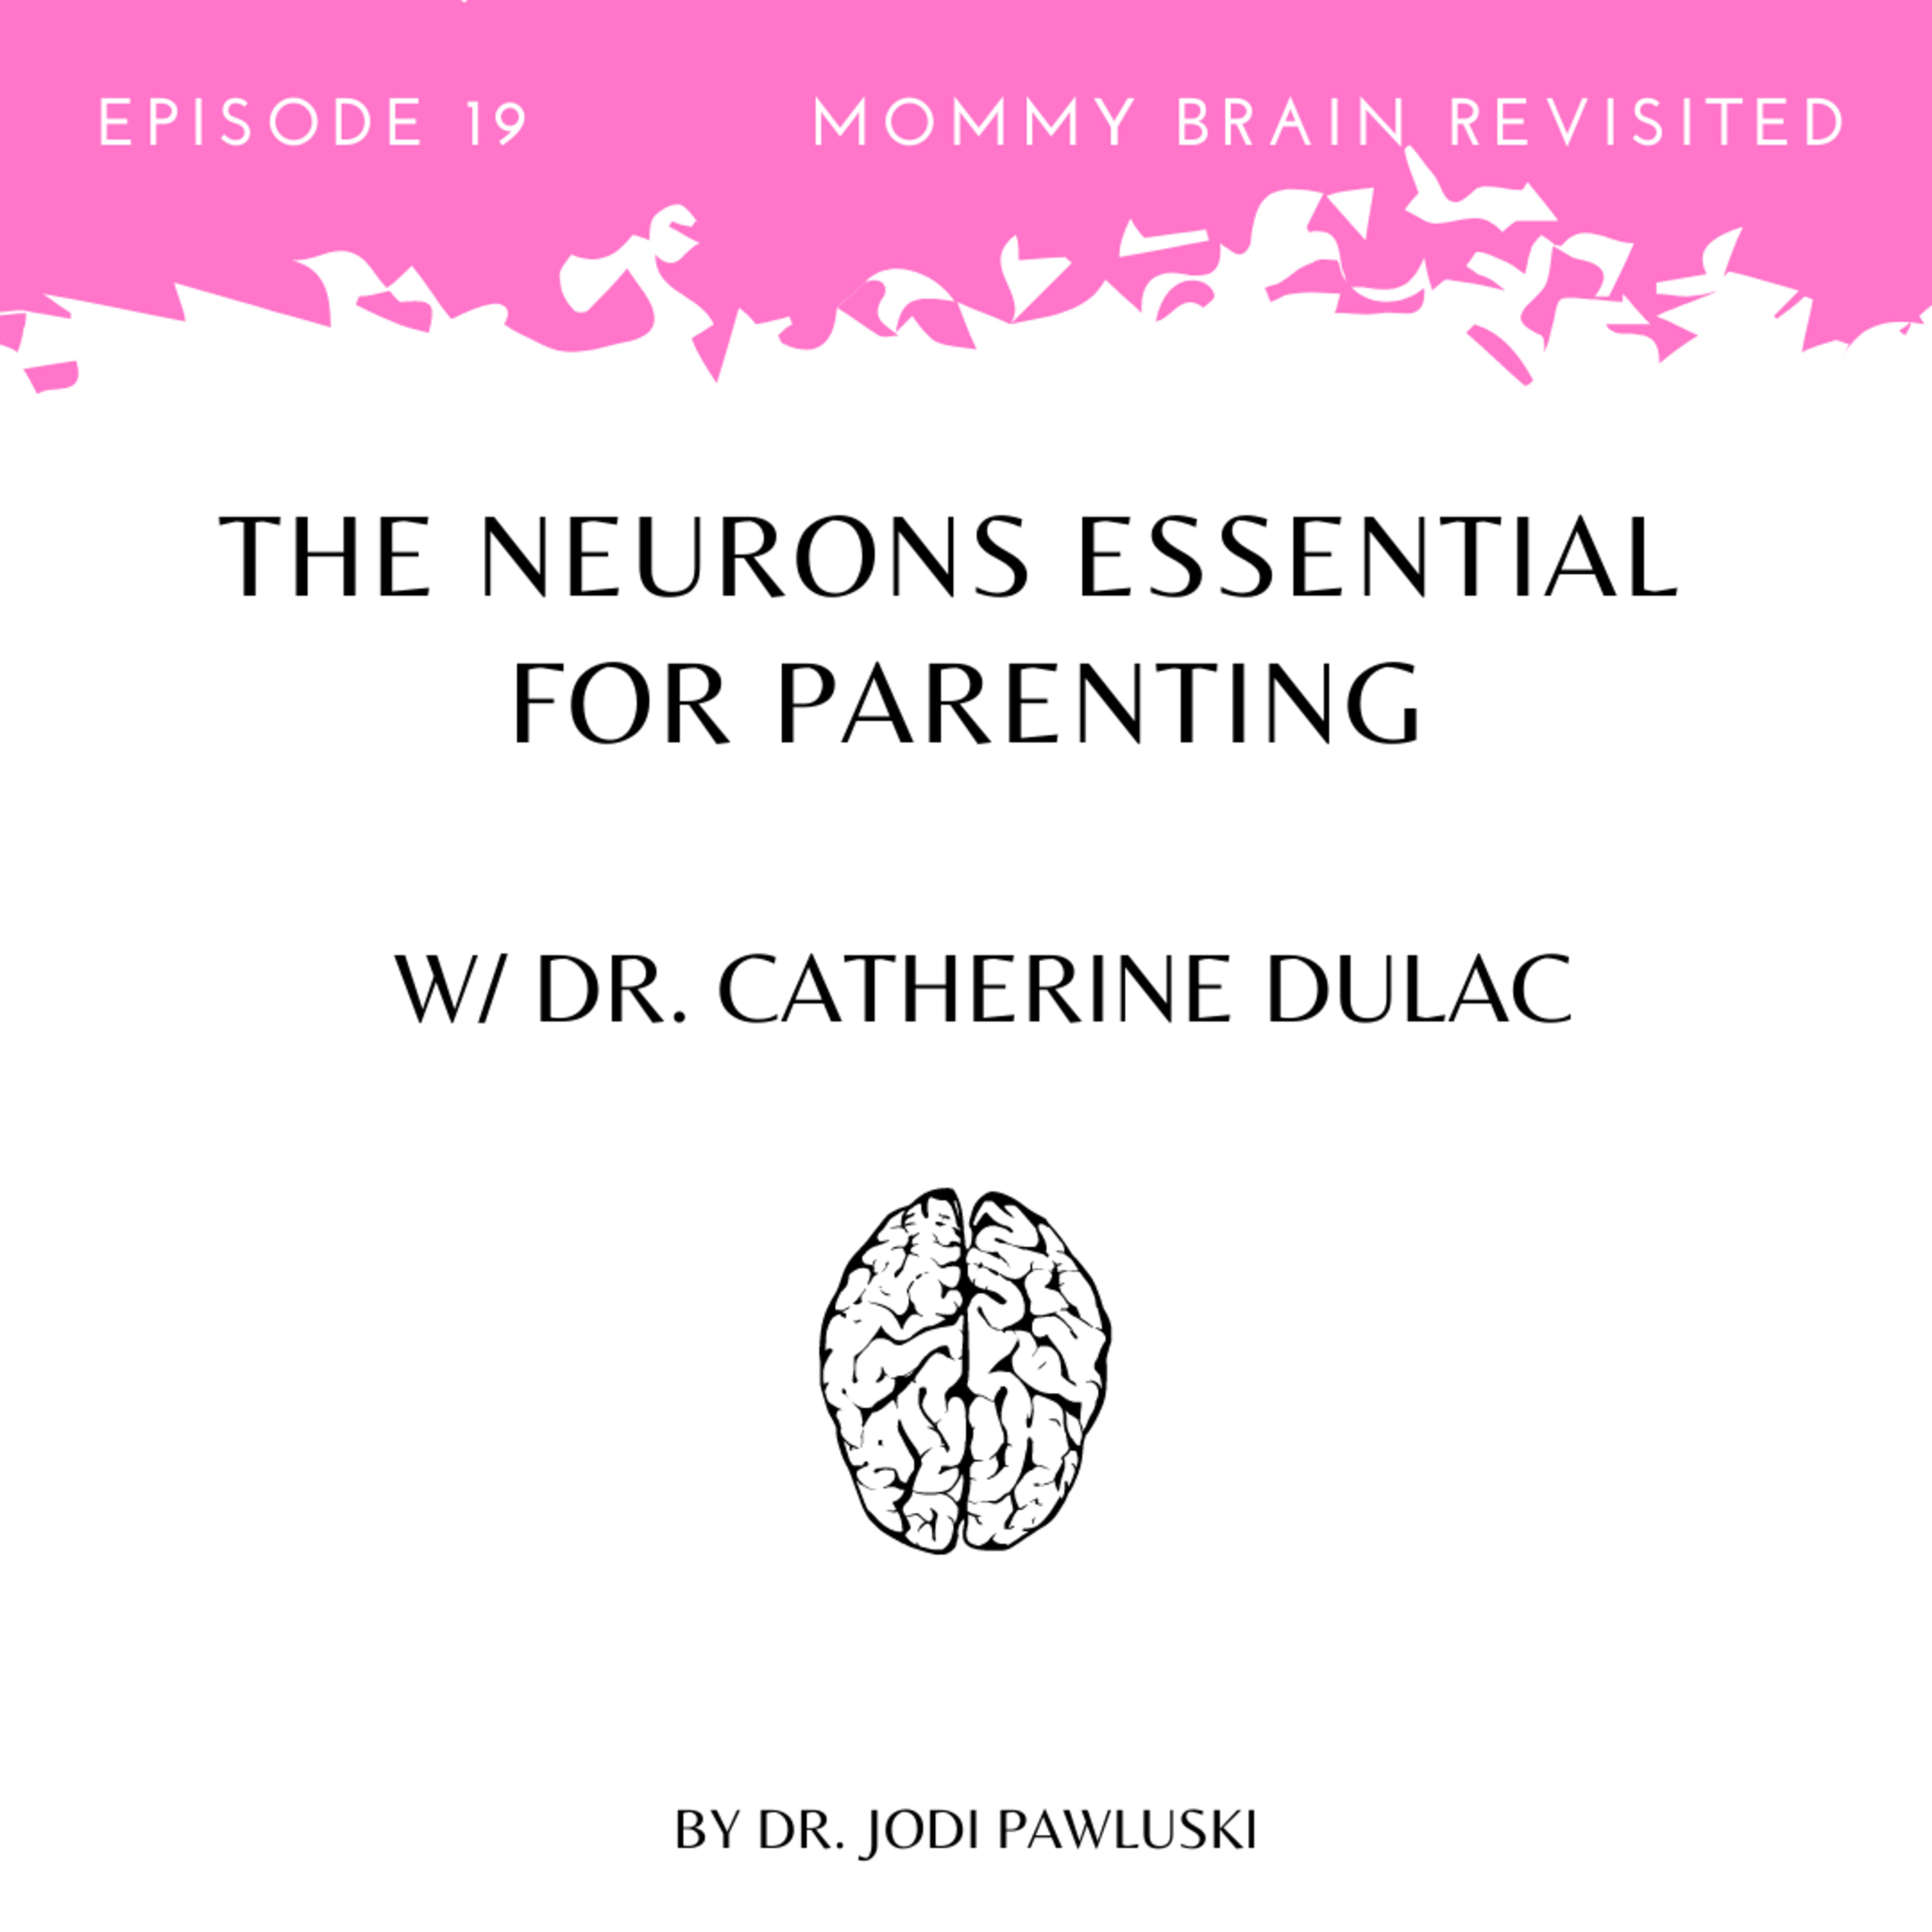 19. The Neurons Essential For Parenting